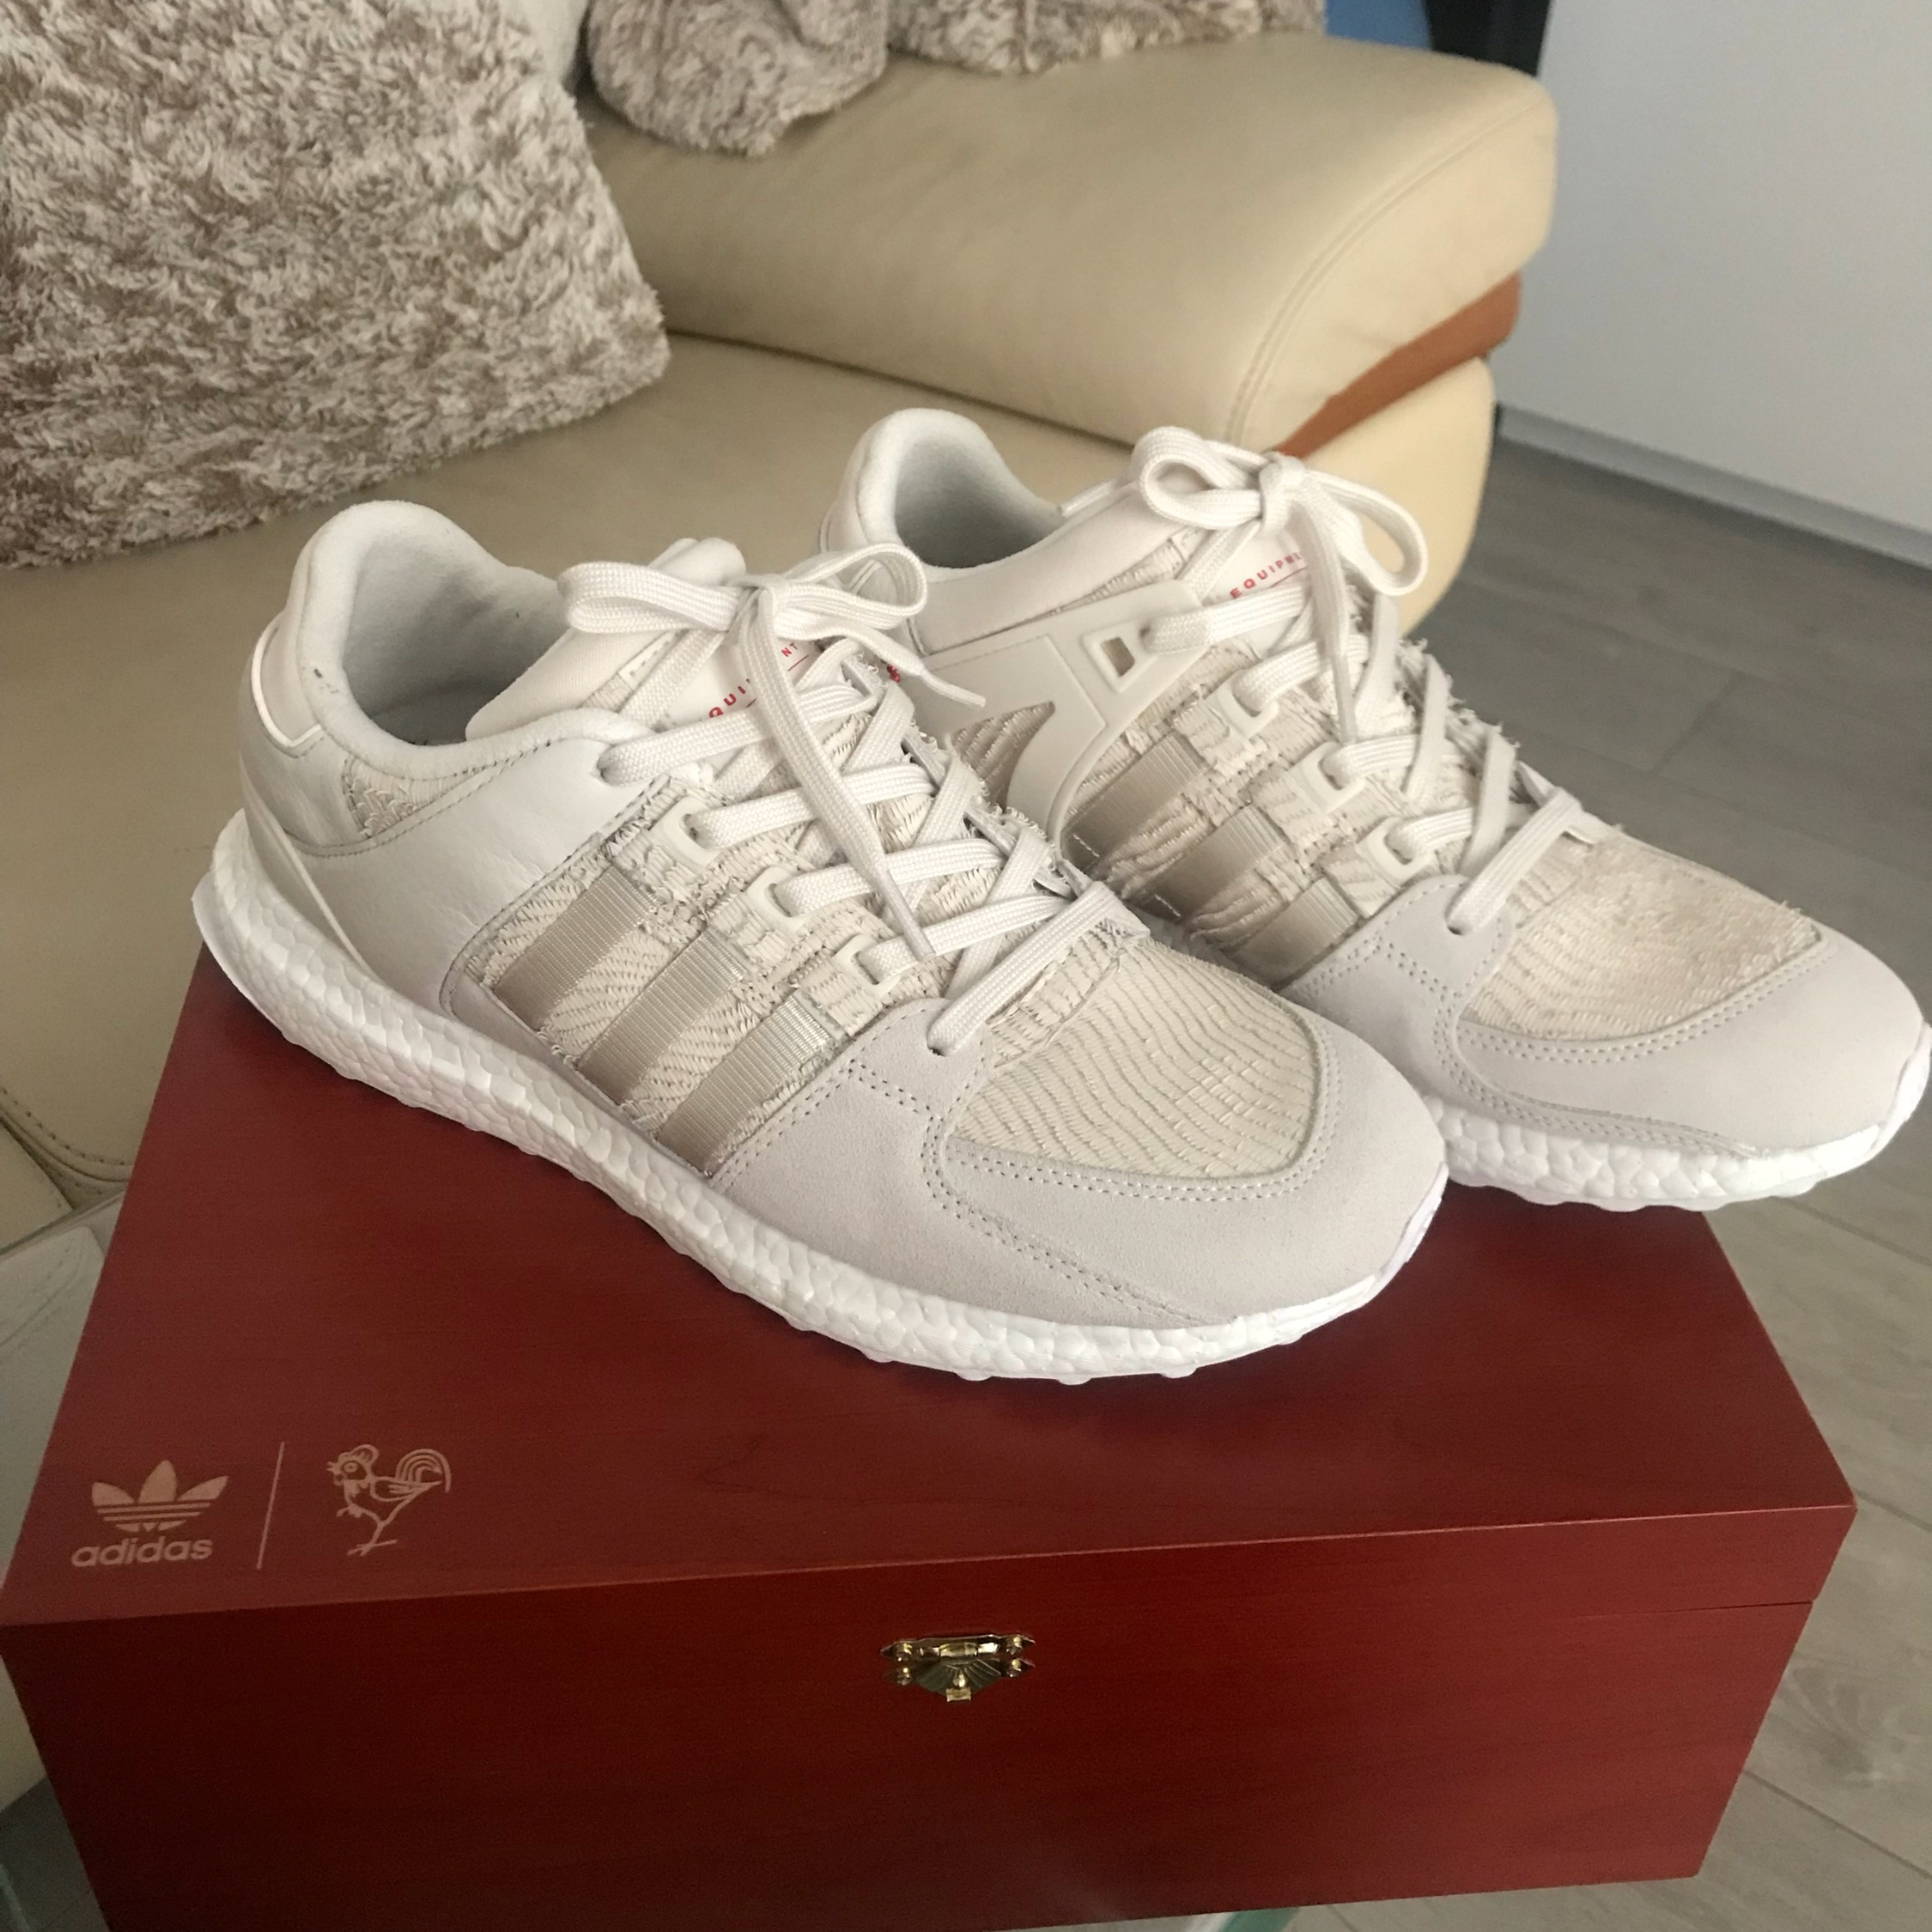 uk availability eca0a d3112 Adidas Eqt Support Ultra 93/16 Chinese New Year